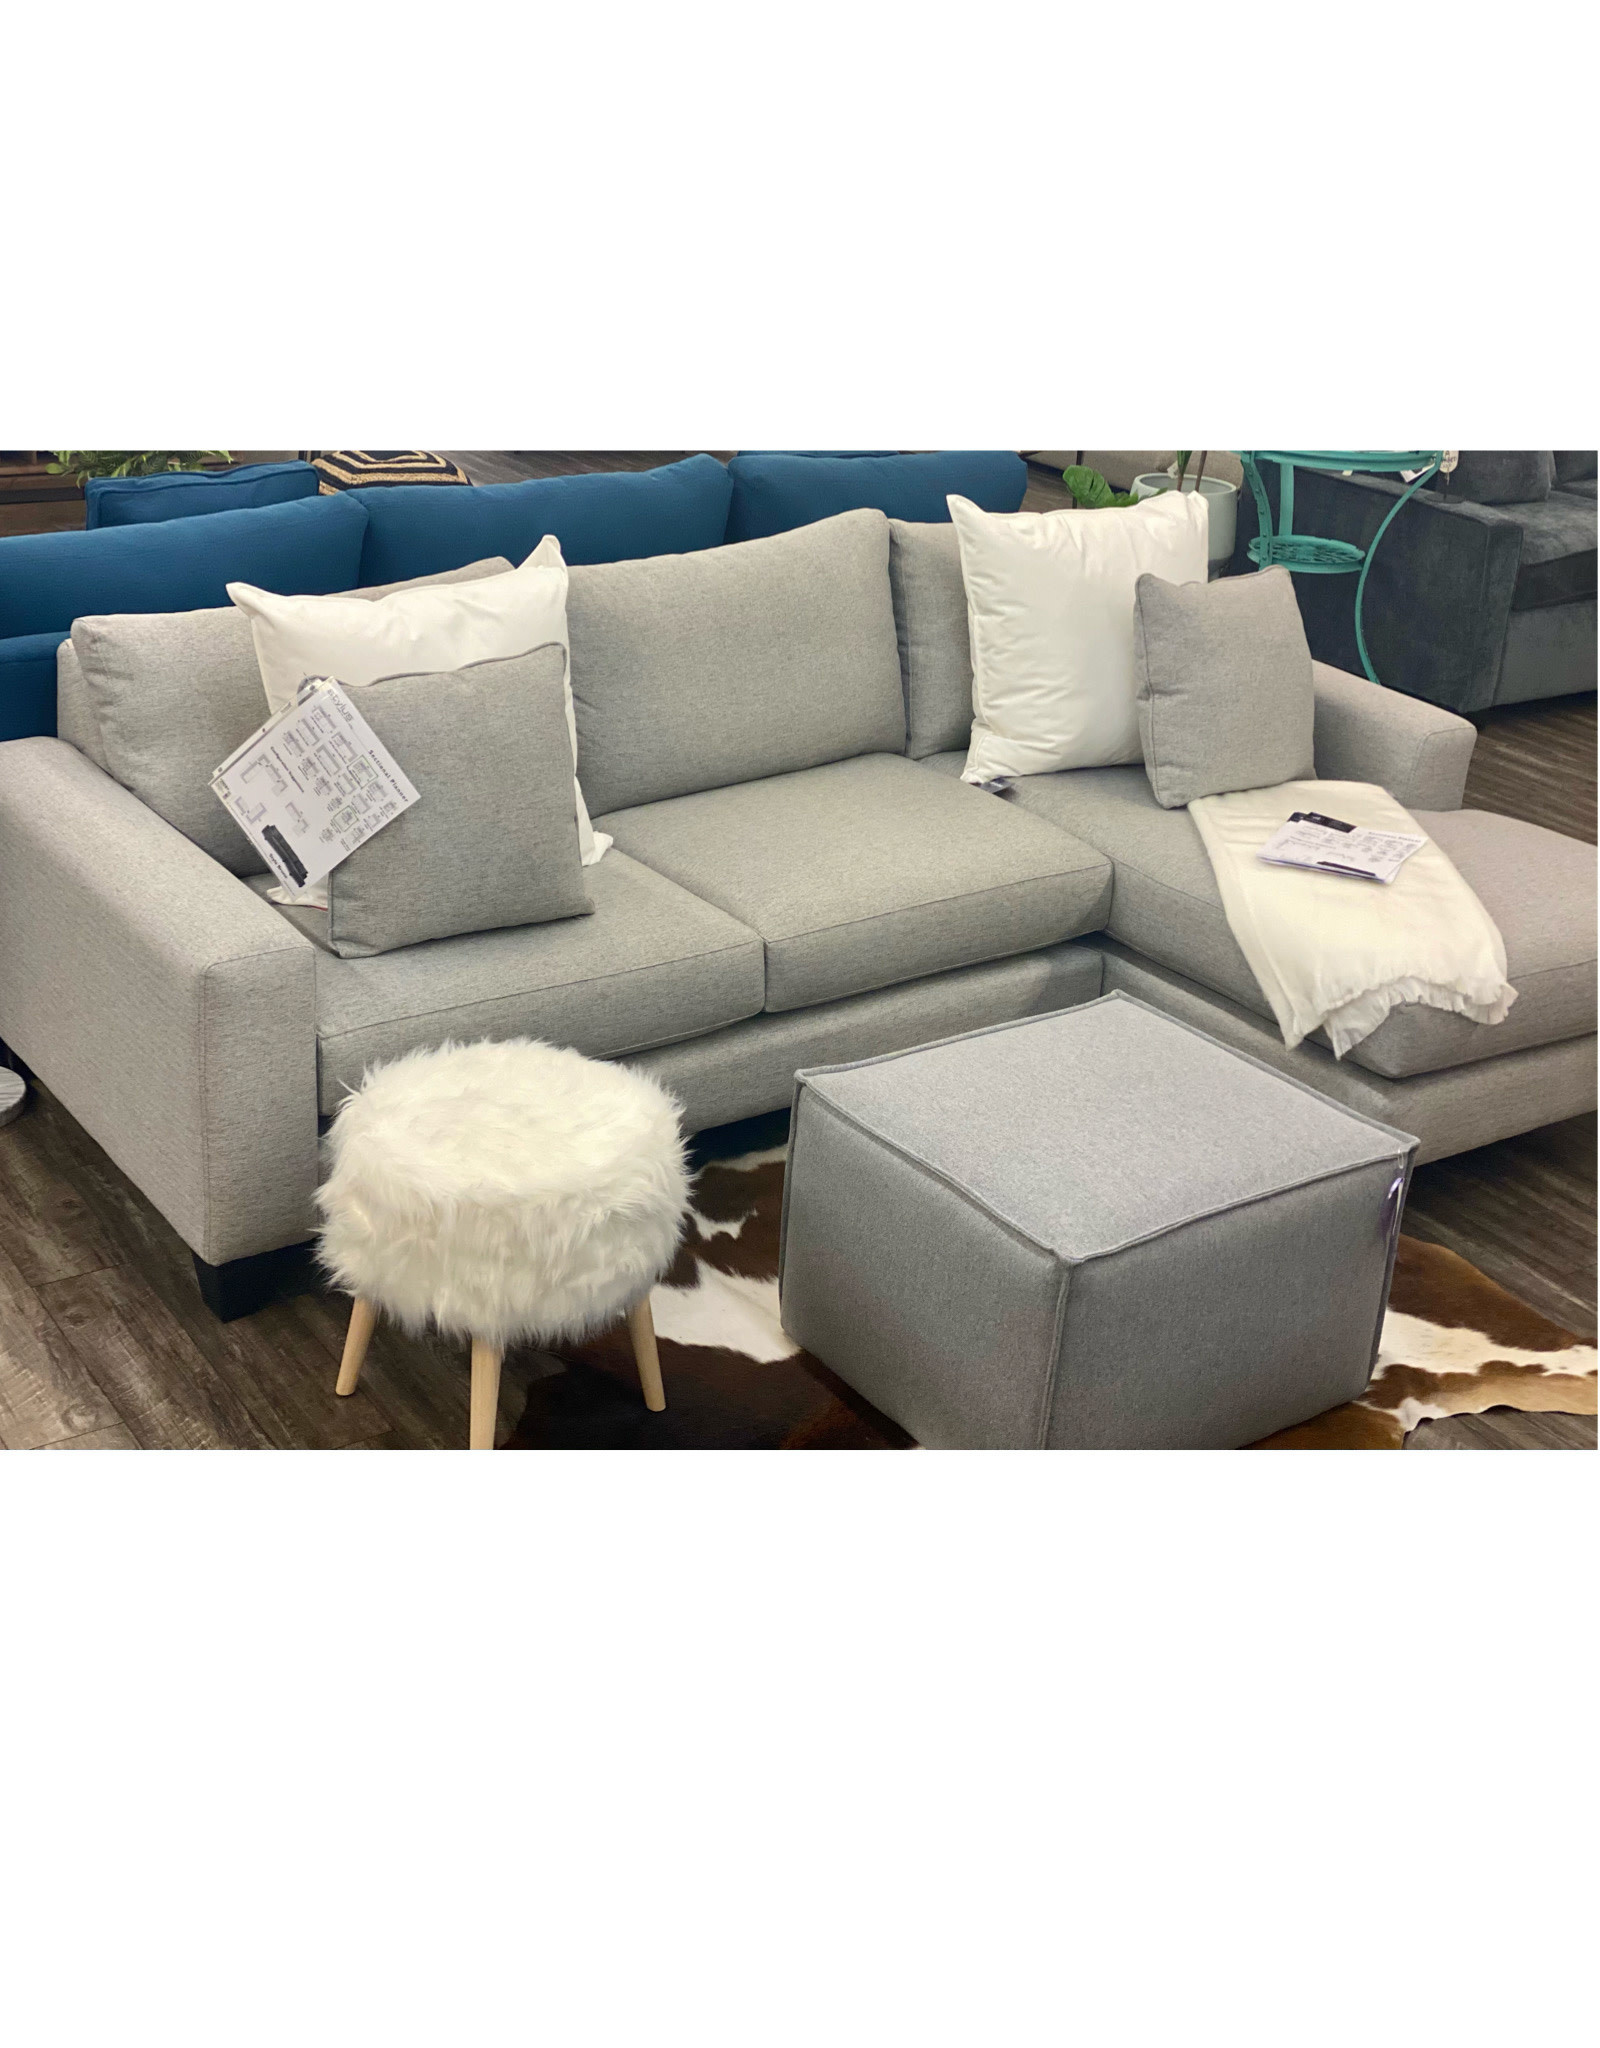 Stylus New York Sectional Prime Silver (15)